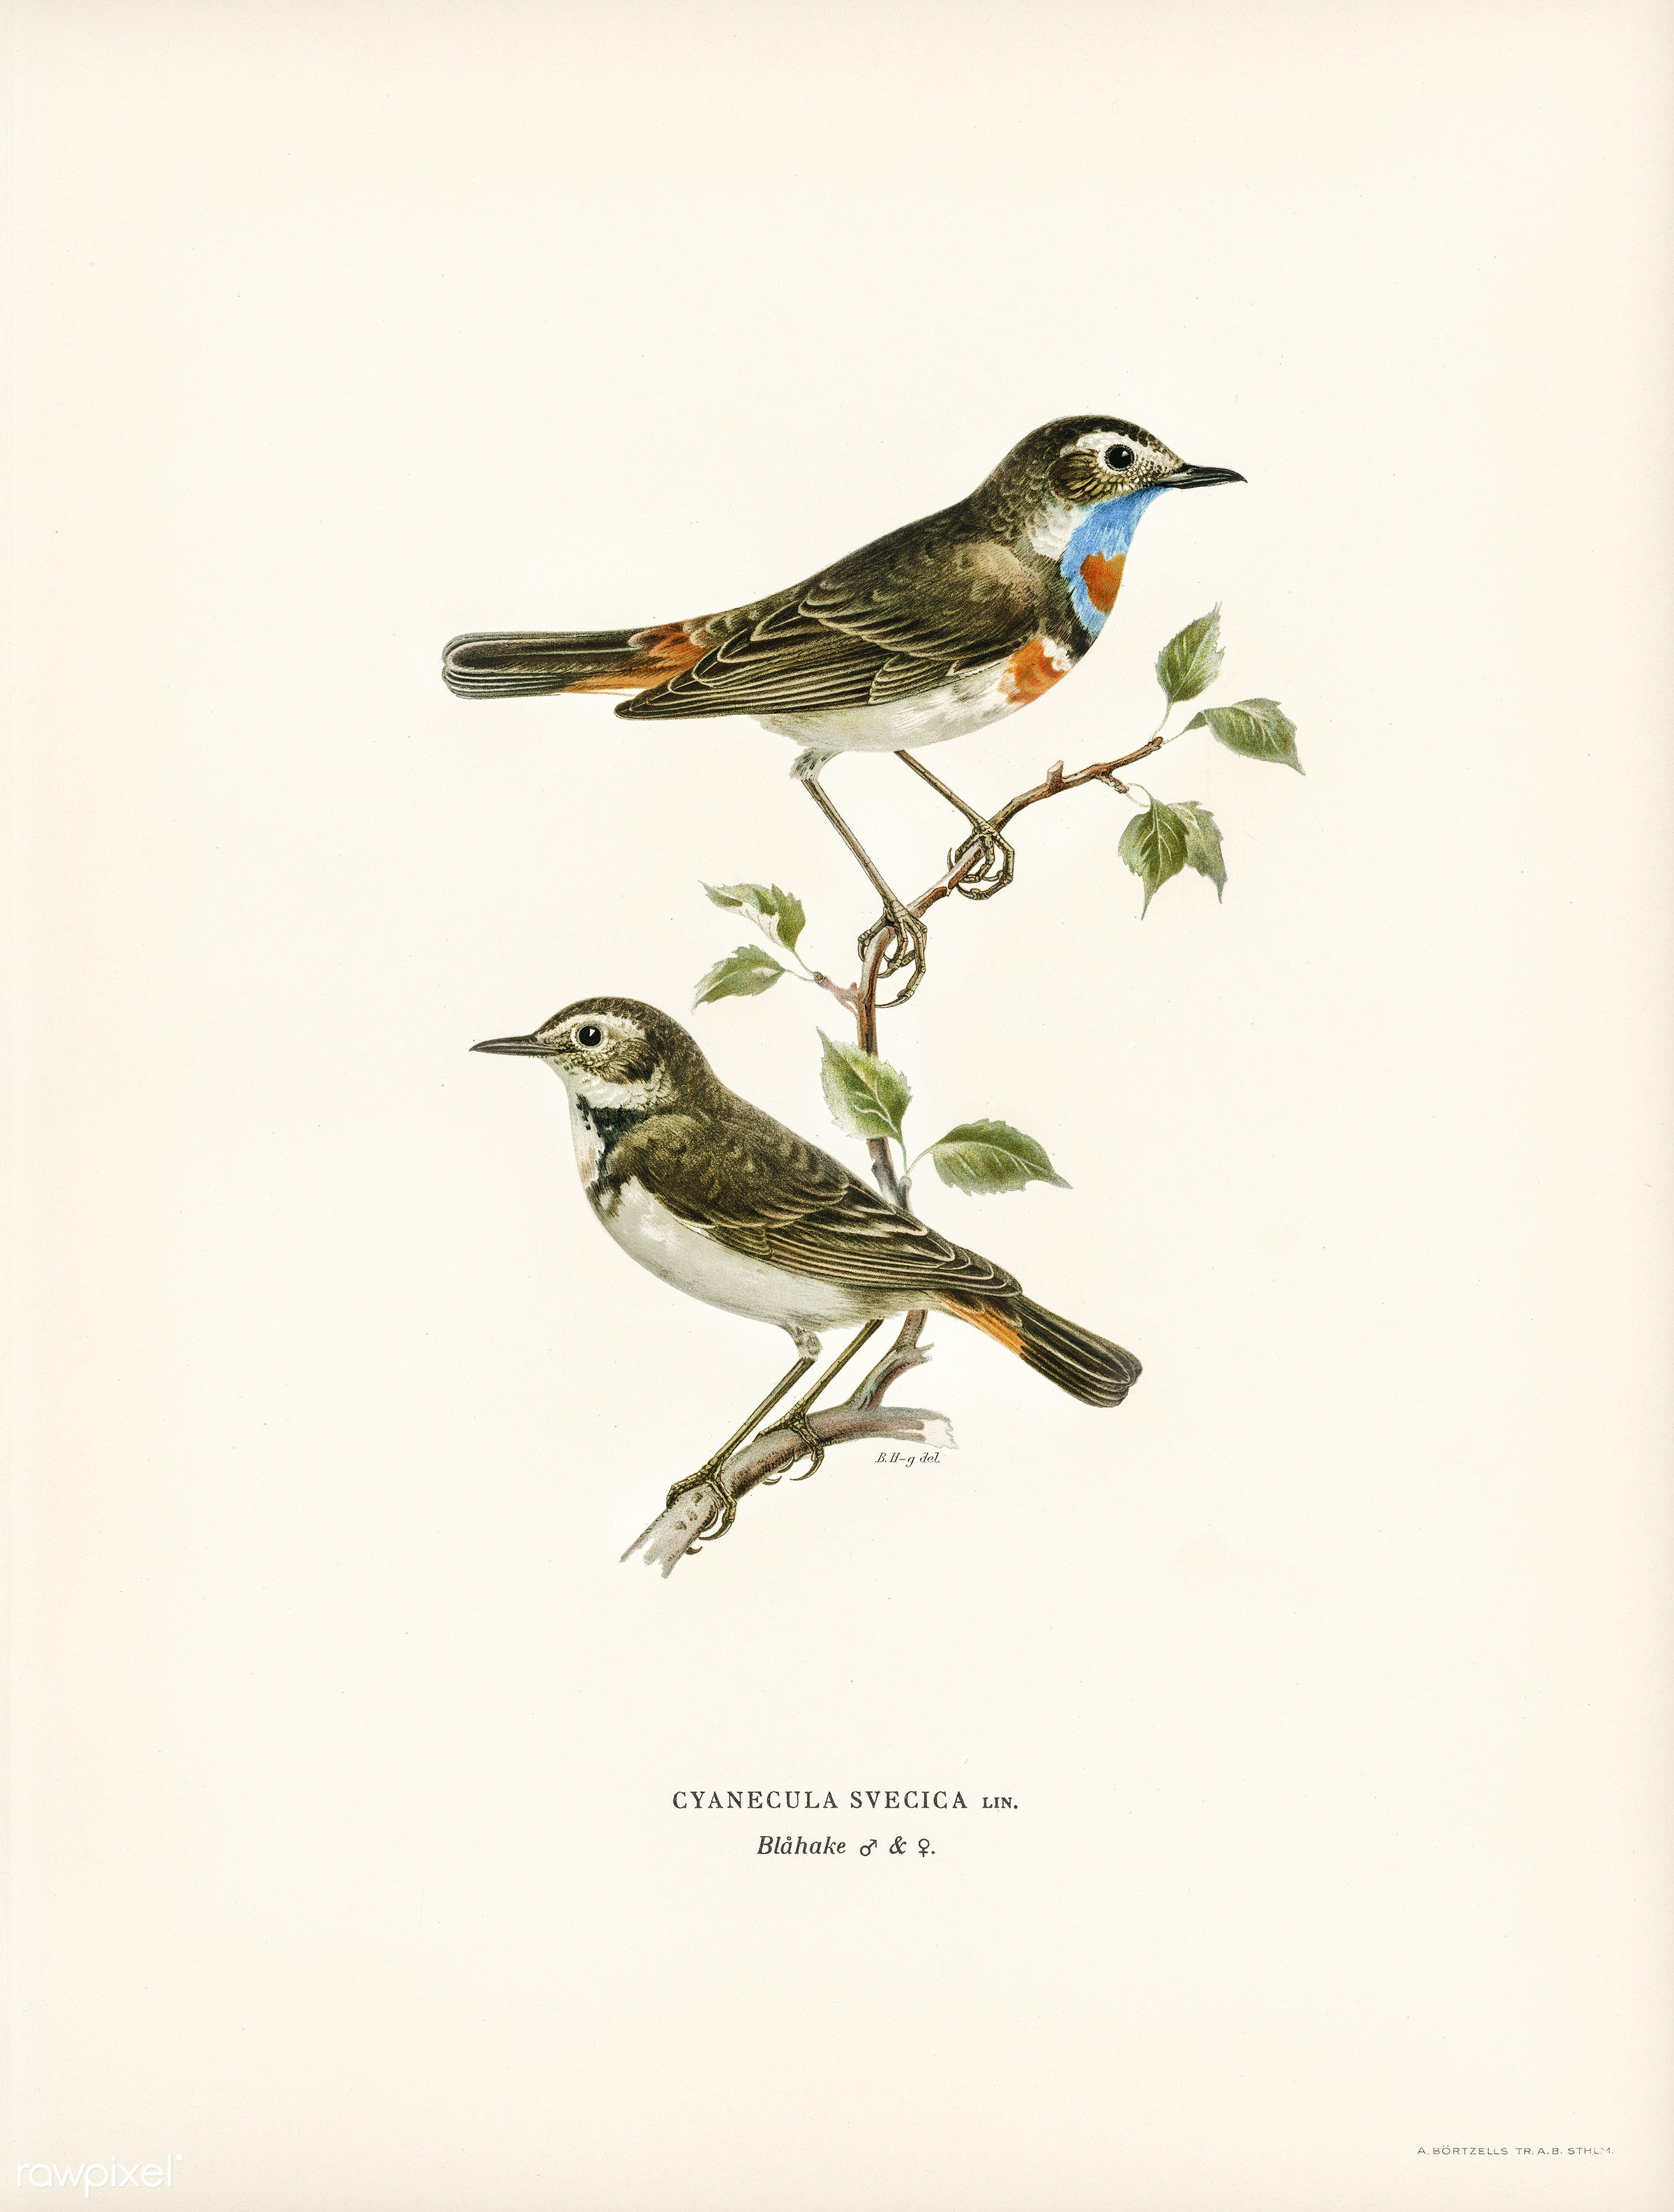 Bluethroat (Cyanecula svecica) illustrated by the von Wright brothers. Digitally enhanced from our own 1929 folio version of...